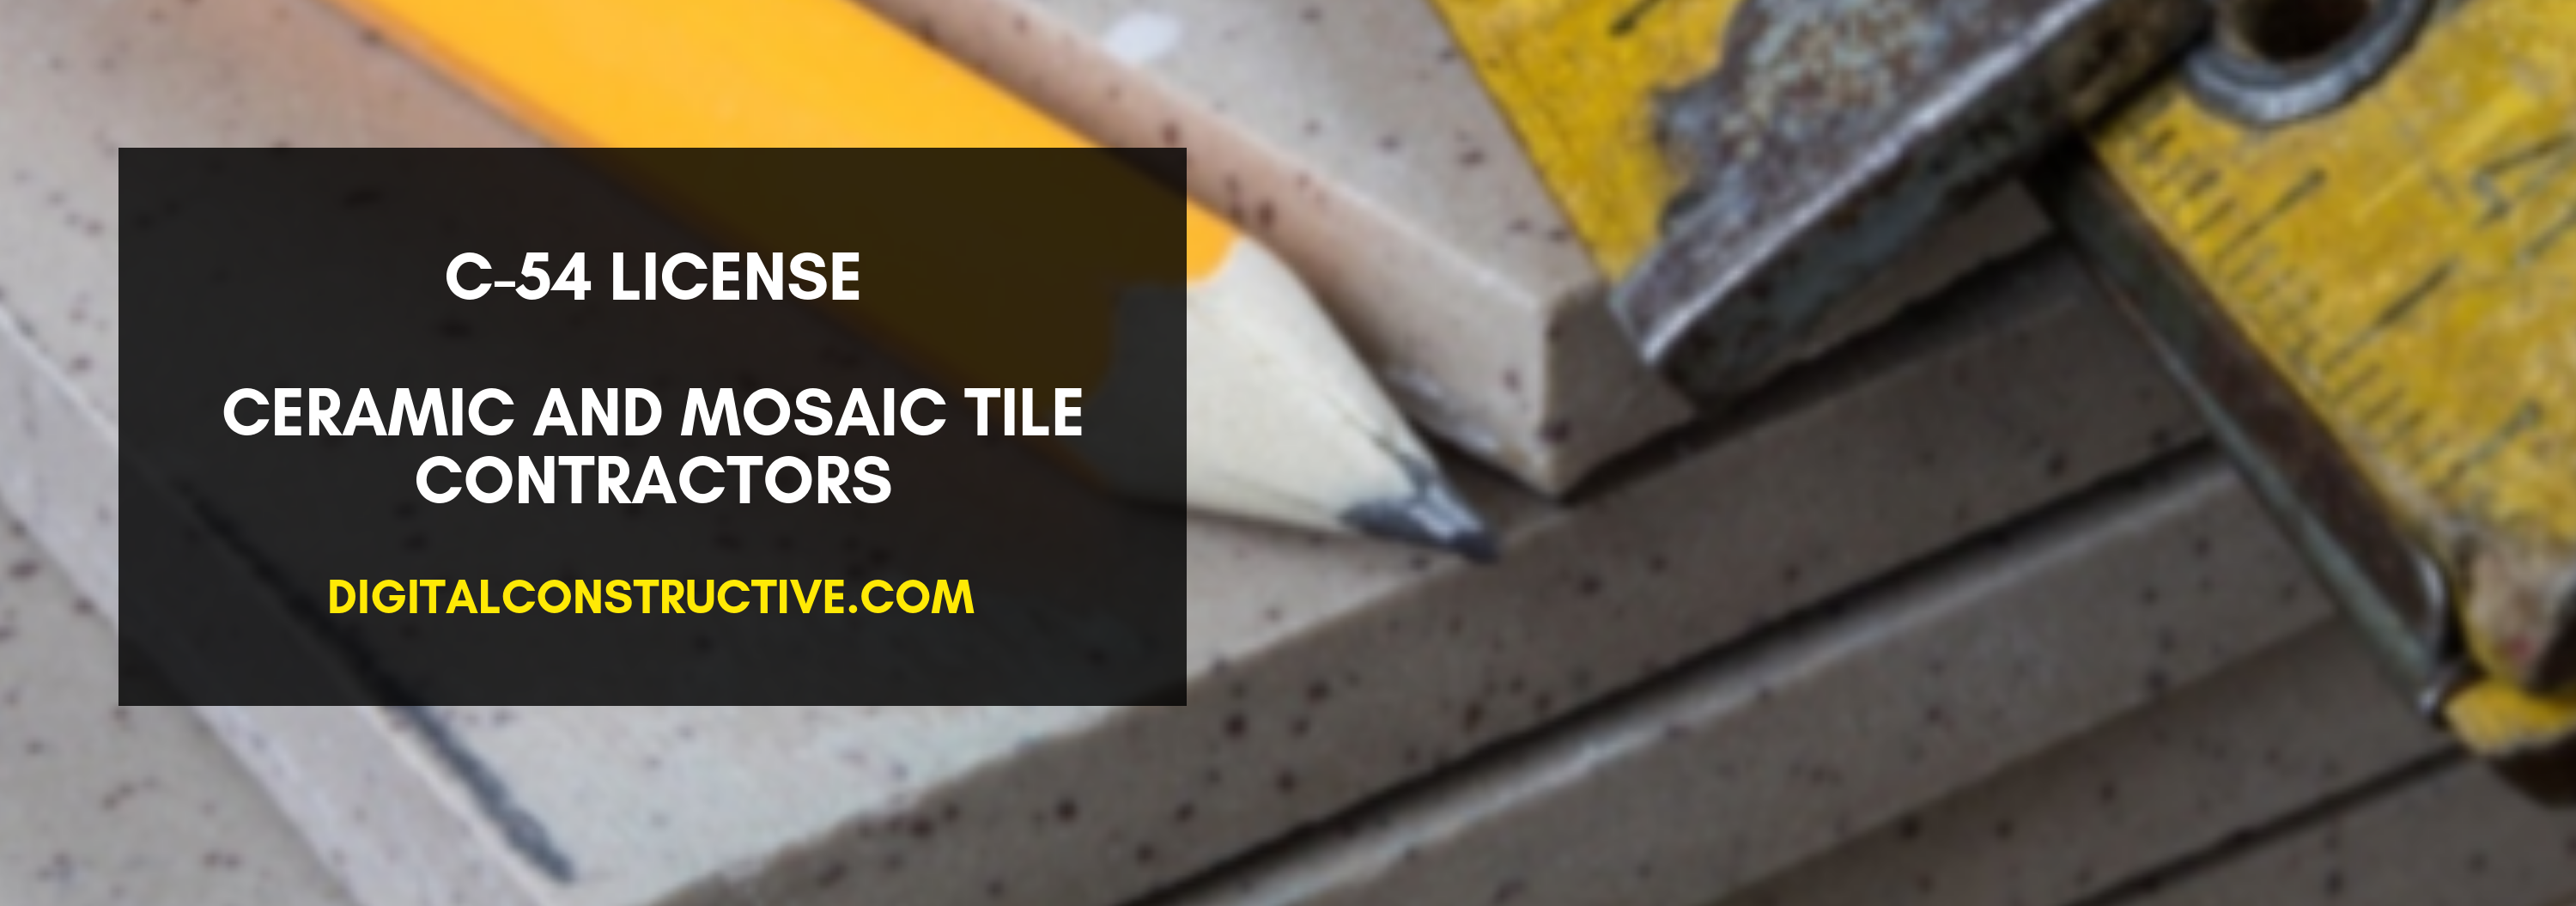 Featured image for a blog post about how to get the C-54 license for tile and mosaic contractors in the state of california. image featured five tiles a ruler and a pencil along with the title of the blog post and name of the website. digitalconstructive.com